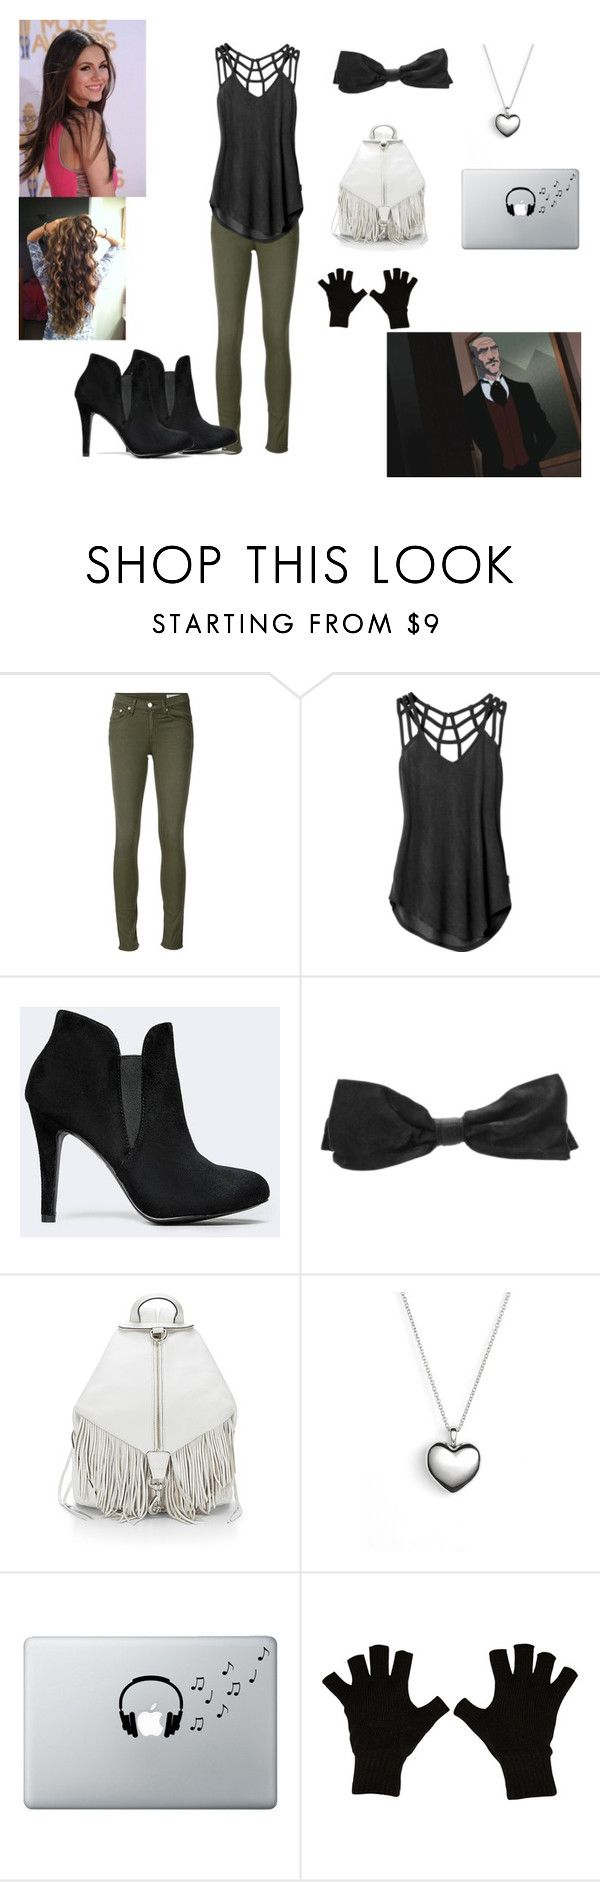 """""""Huntress """"Casual Day At The Wayne's"""""""" by mundca ❤ liked on Polyvore featuring rag & bone/JEAN, RVCA, Chanel, Rebecca Minkoff, Pandora, Music Notes and Billabong"""